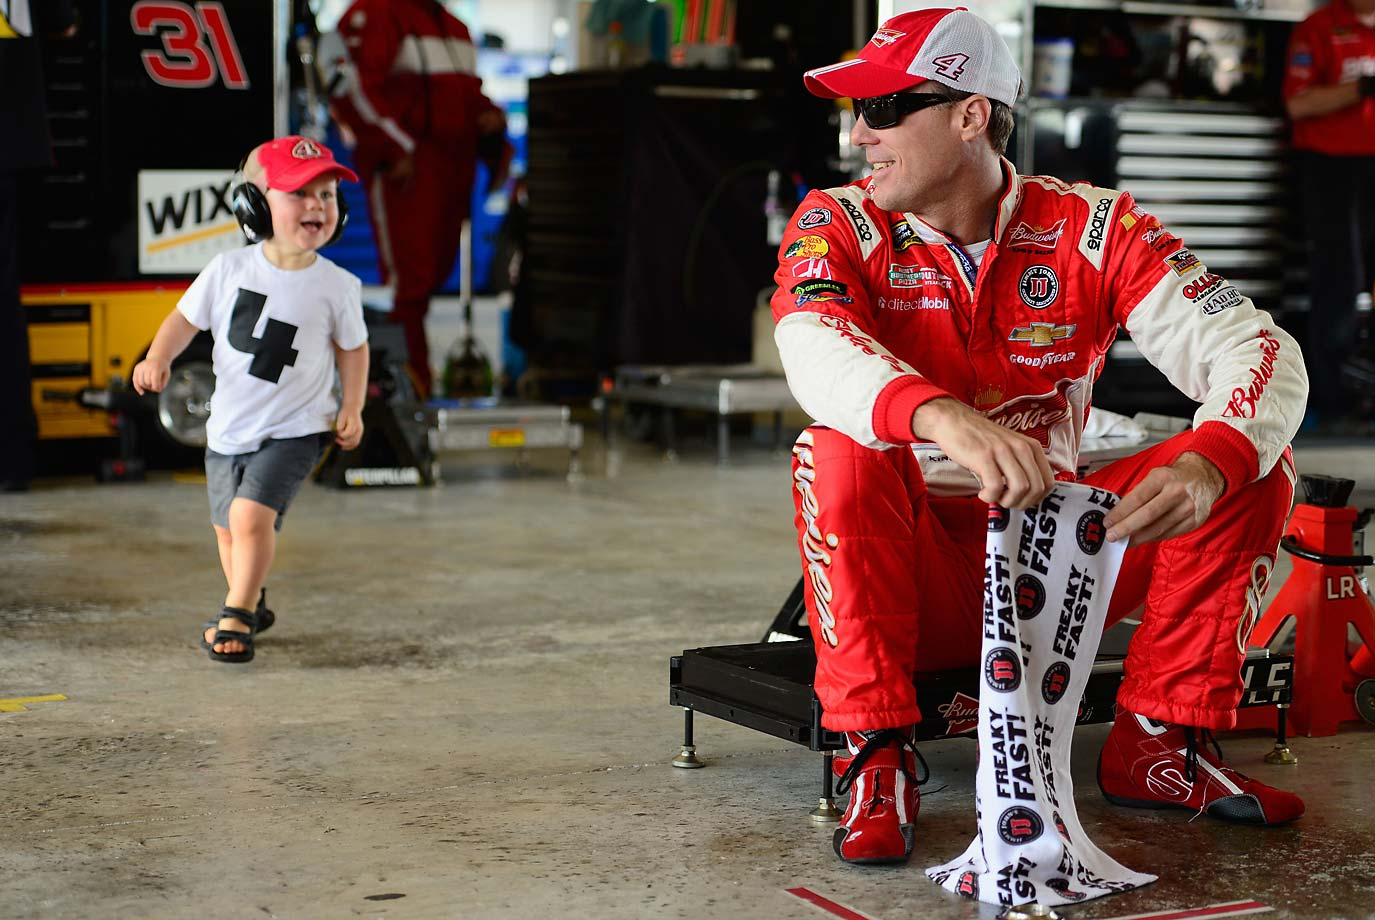 Kevin Harvick and his son, Keelan, spend time in the garage during practice for the final race of the 2014 Sprint Cup Series.